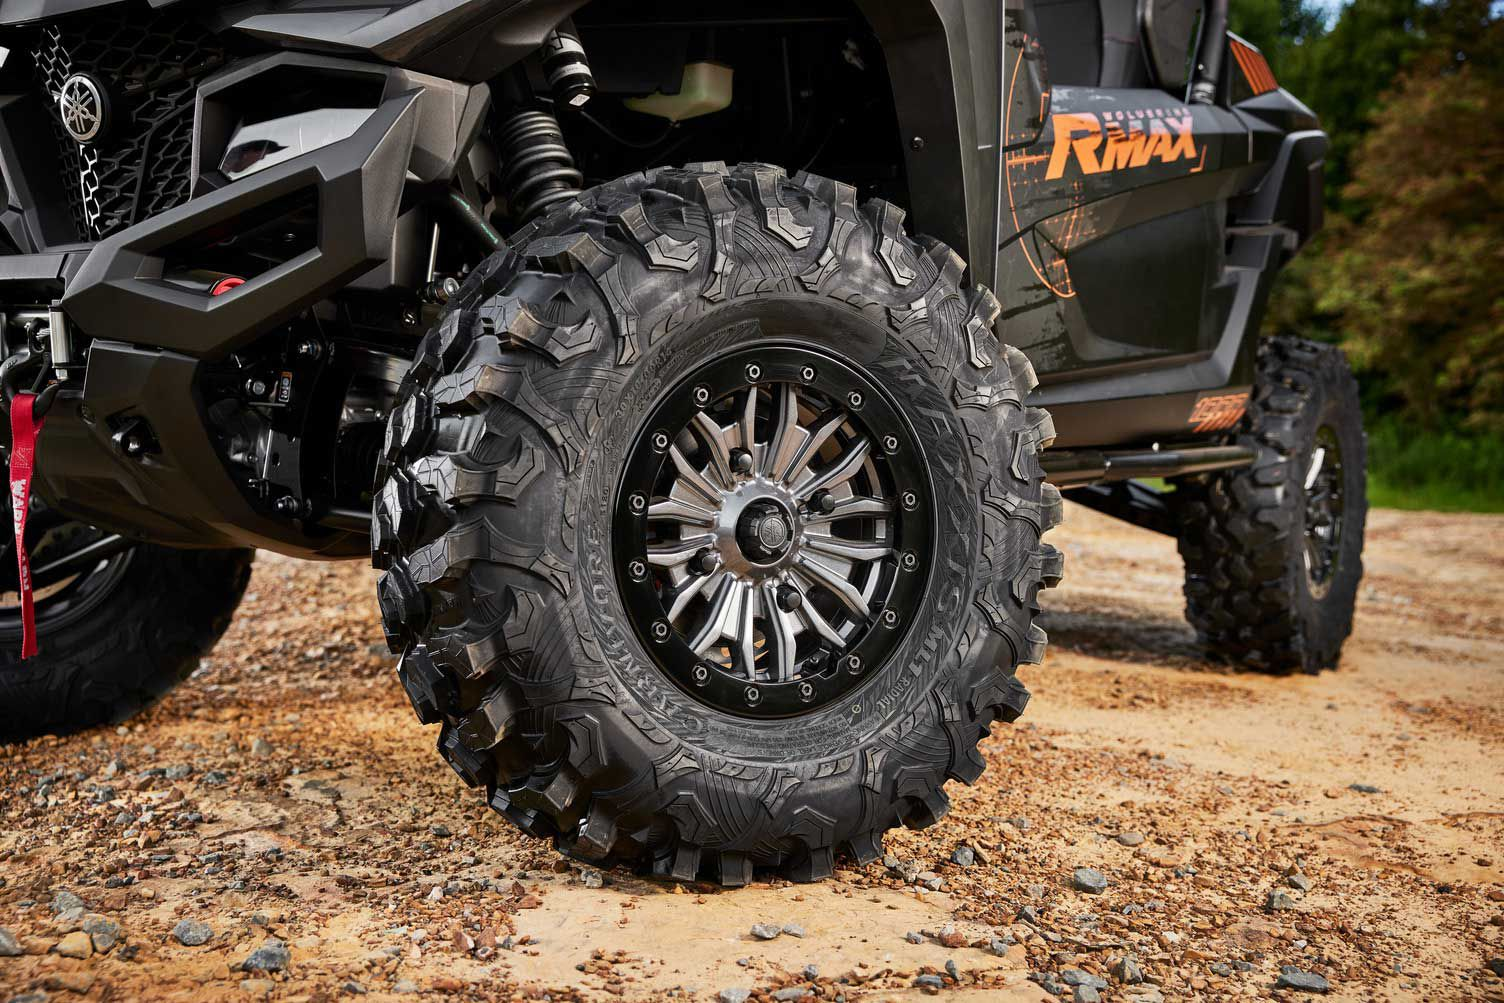 New for 2022, the RMAX Sport, XT-R, and LE two-seaters get a set of color-matched aluminum beadlock wheels.